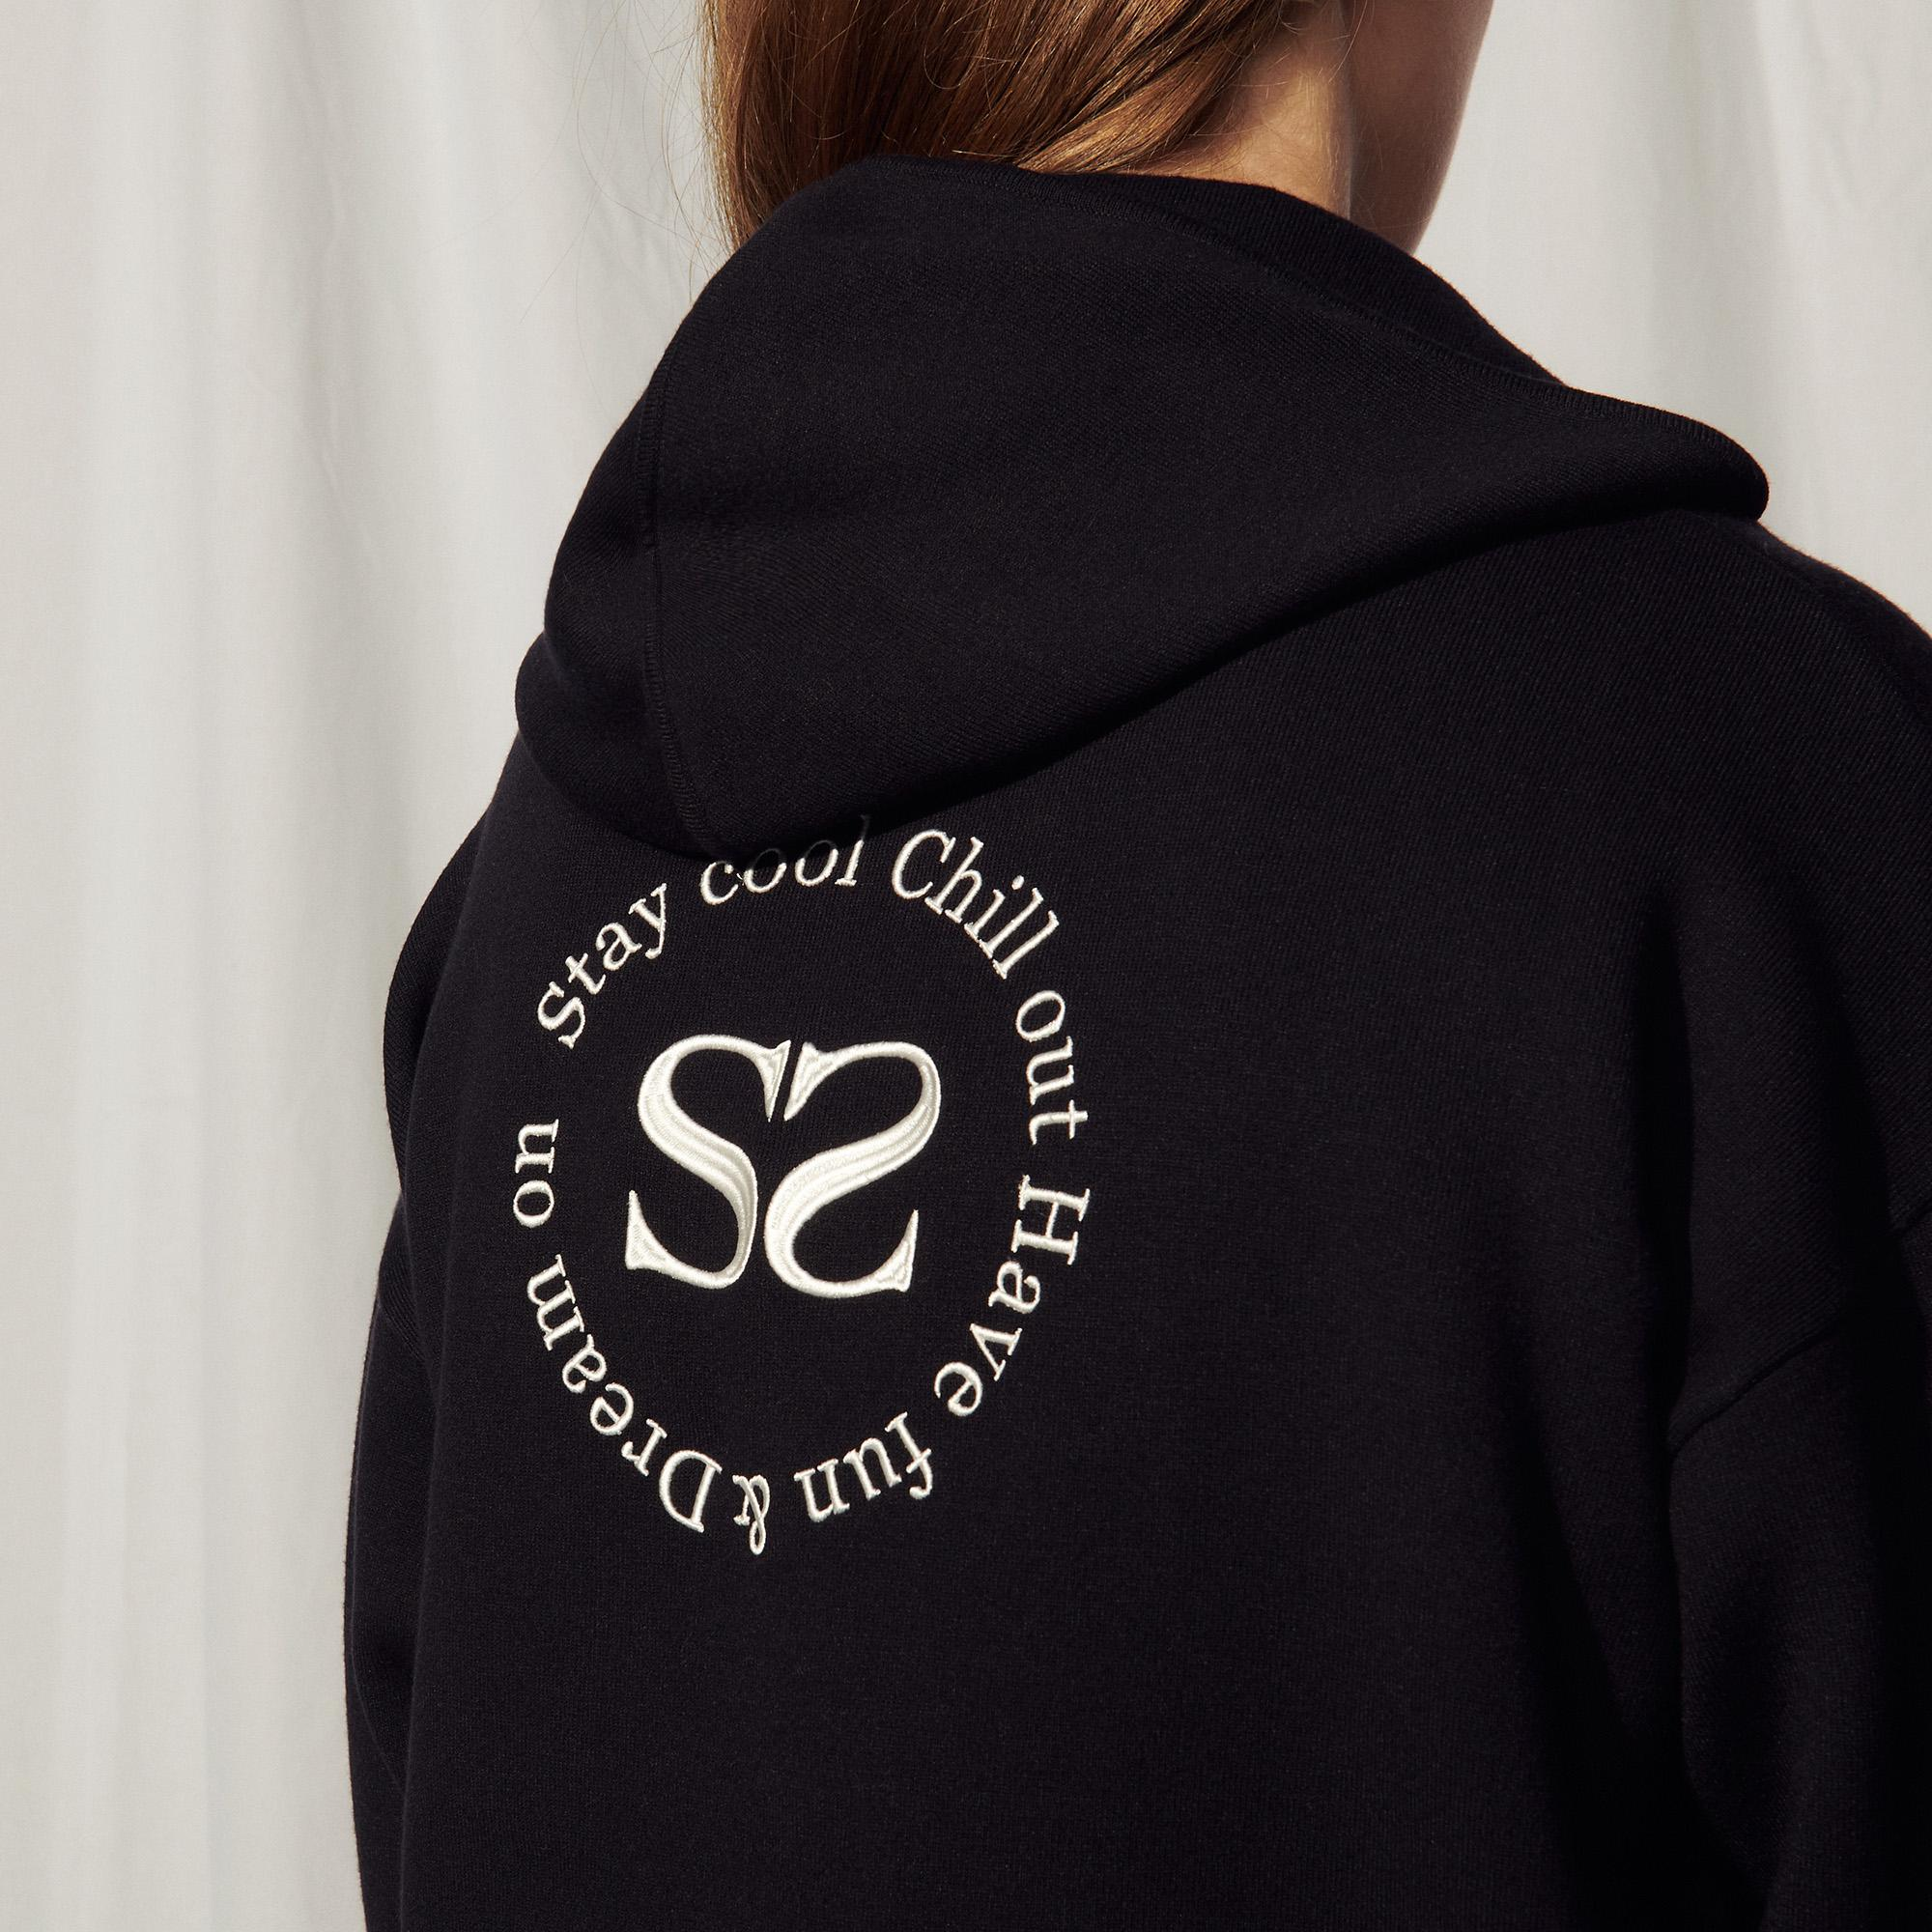 Zipped hoodie with an embroidered back 4